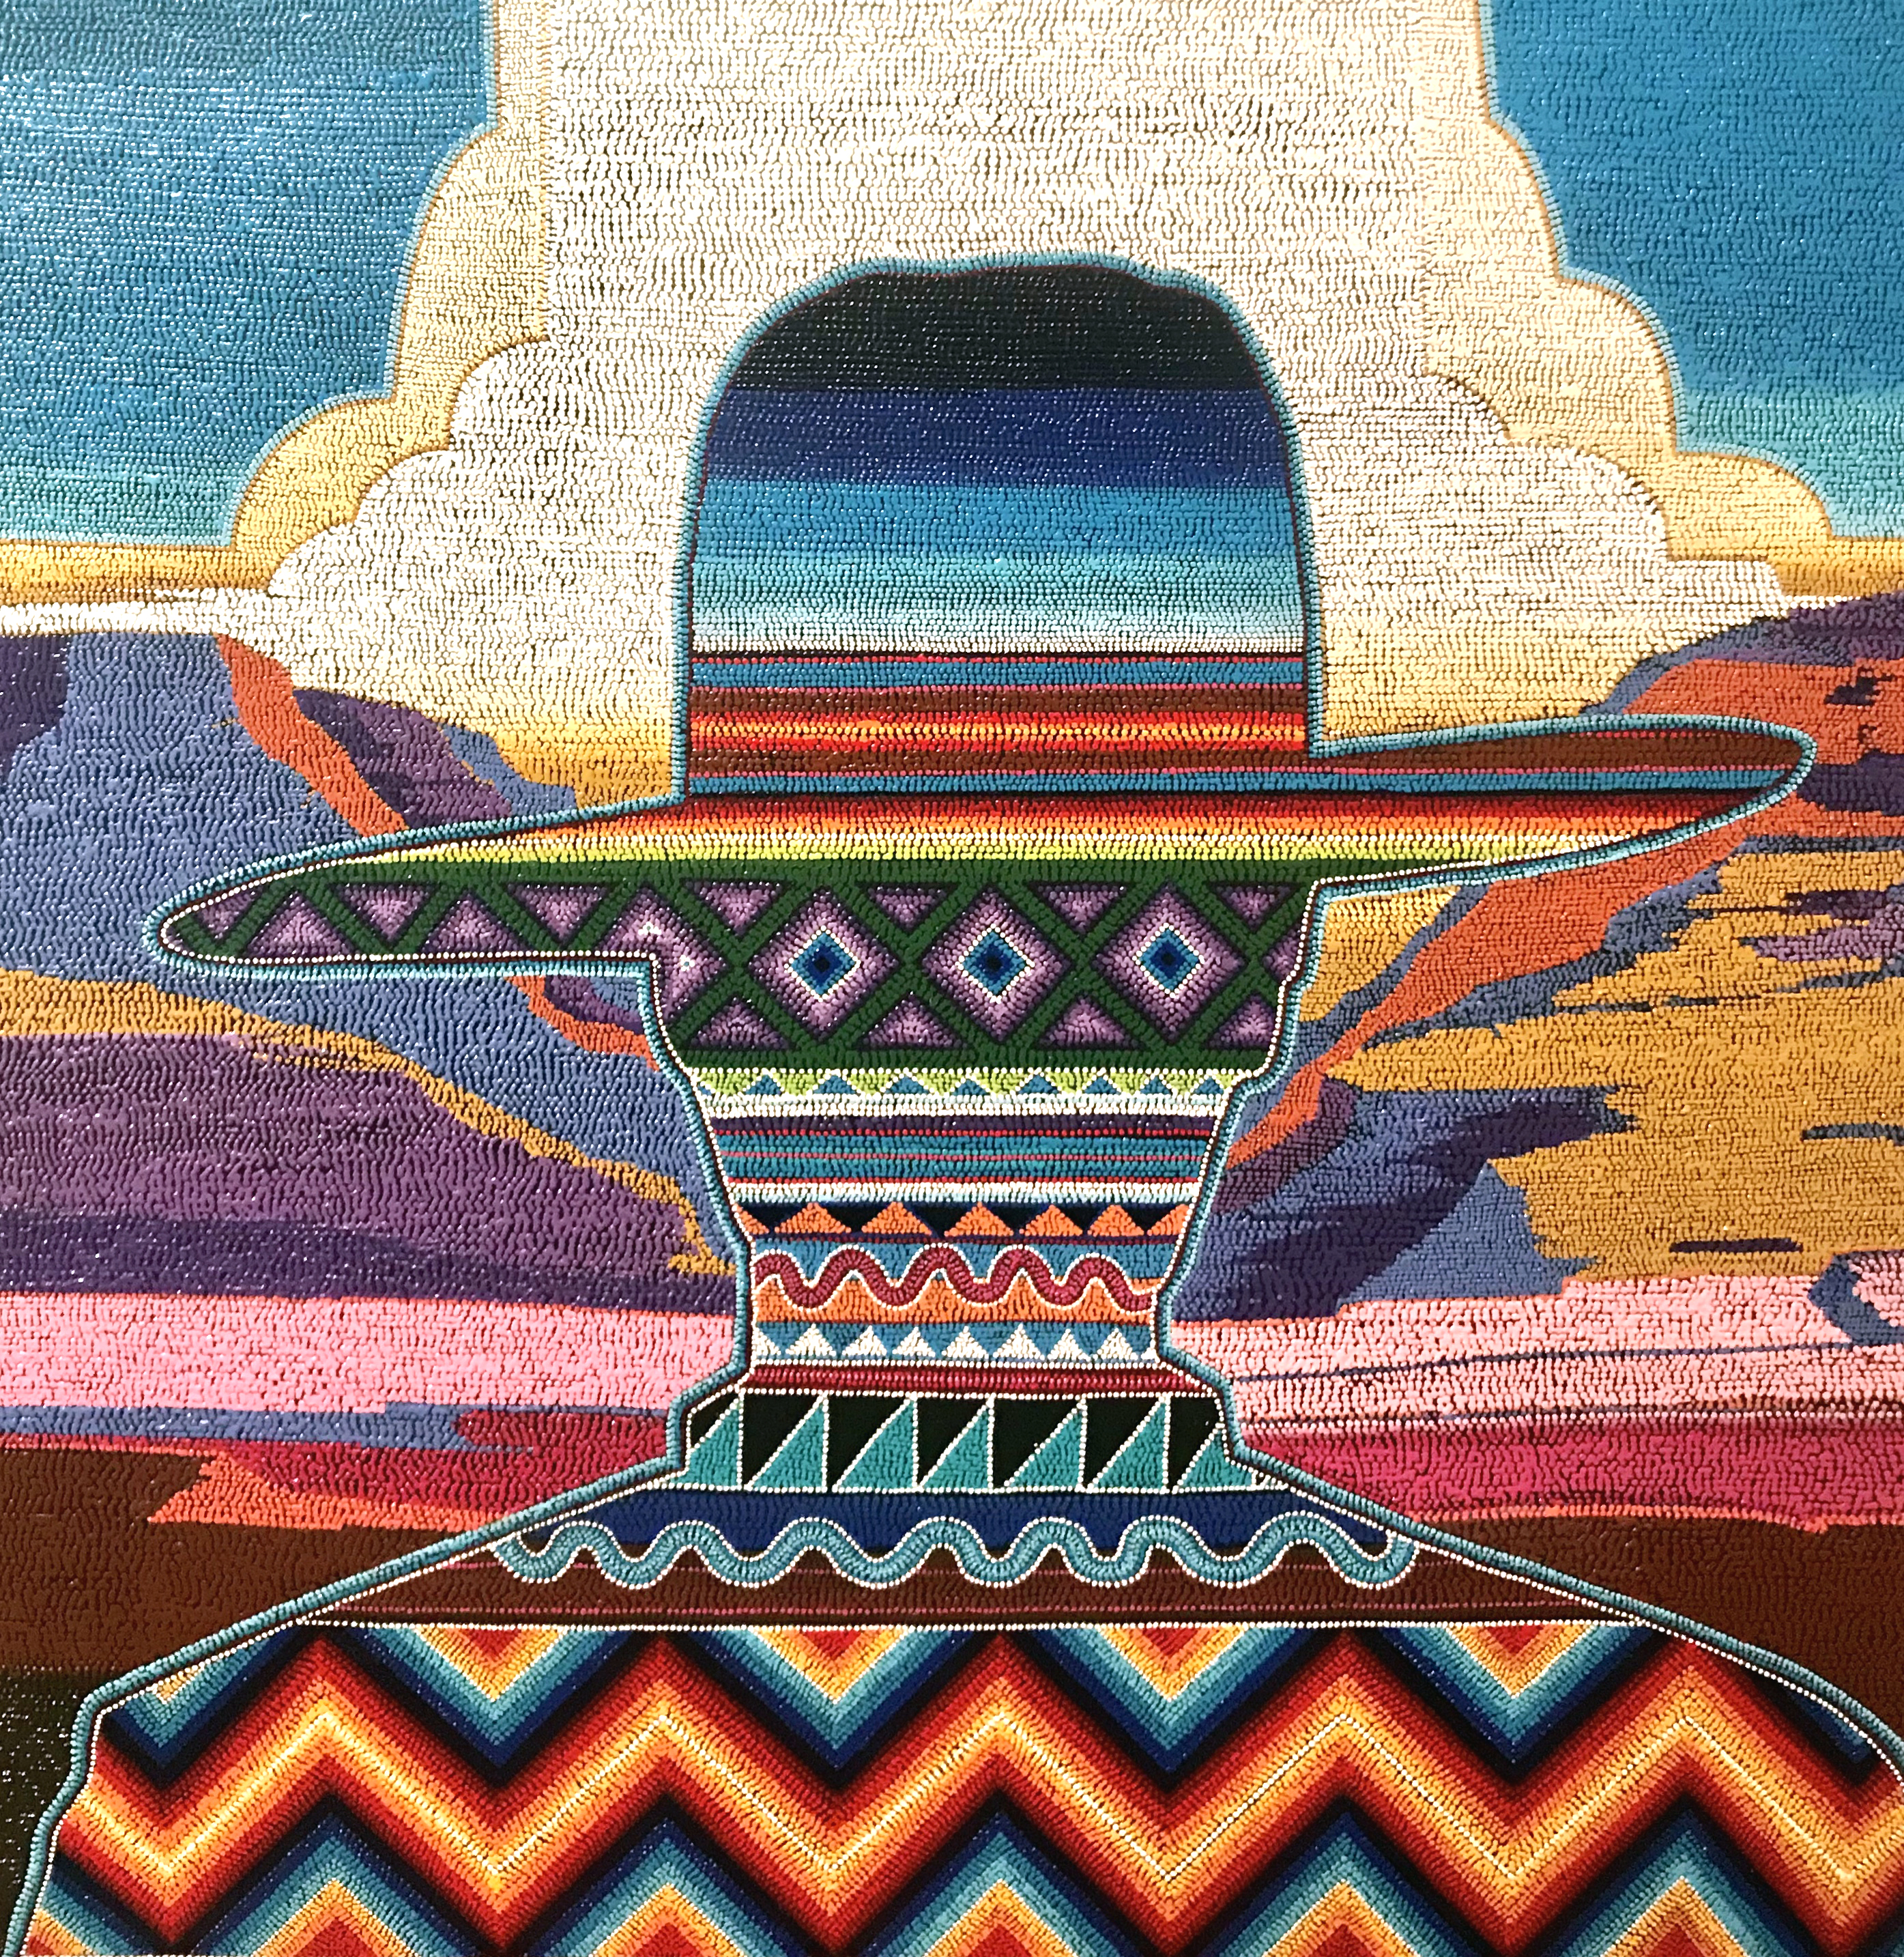 INDIGENOUS VISIONARIES: NEW WORKS BY CHRIS PAPPAN AND STARR HARDRIDGE @ Blue Rain Gallery | Santa Fe | New Mexico | United States